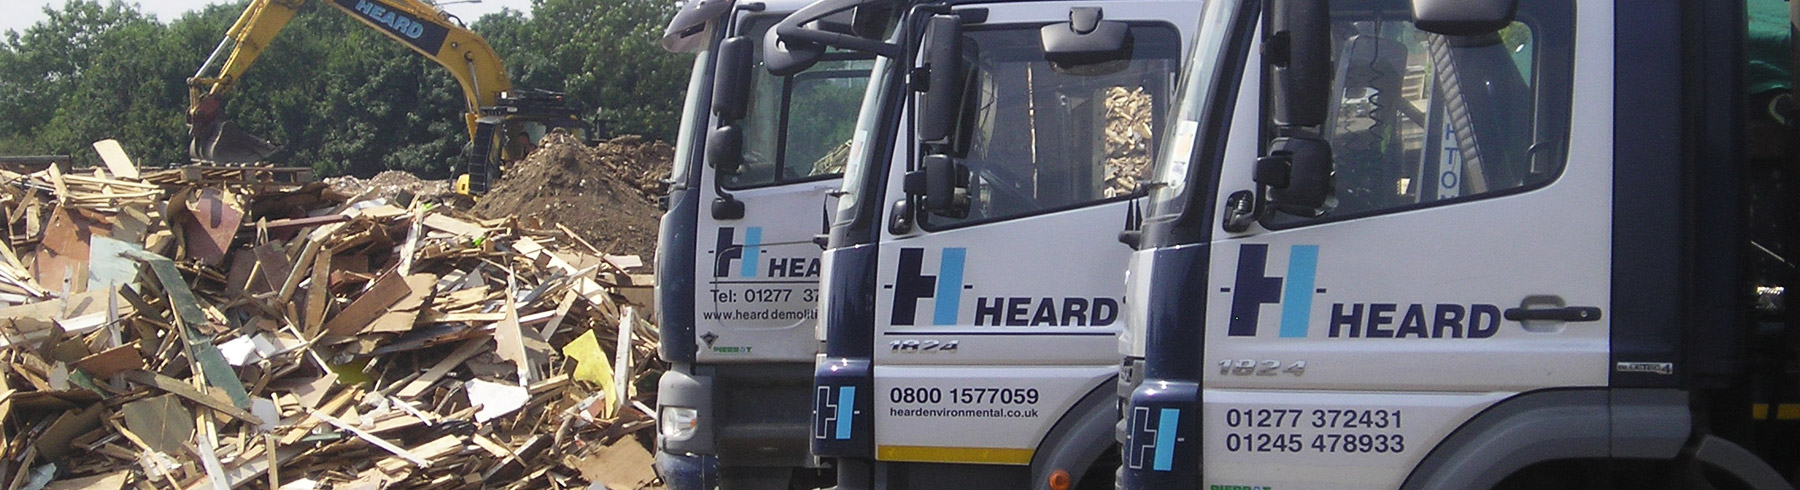 Essex Skip Hire Vehicles